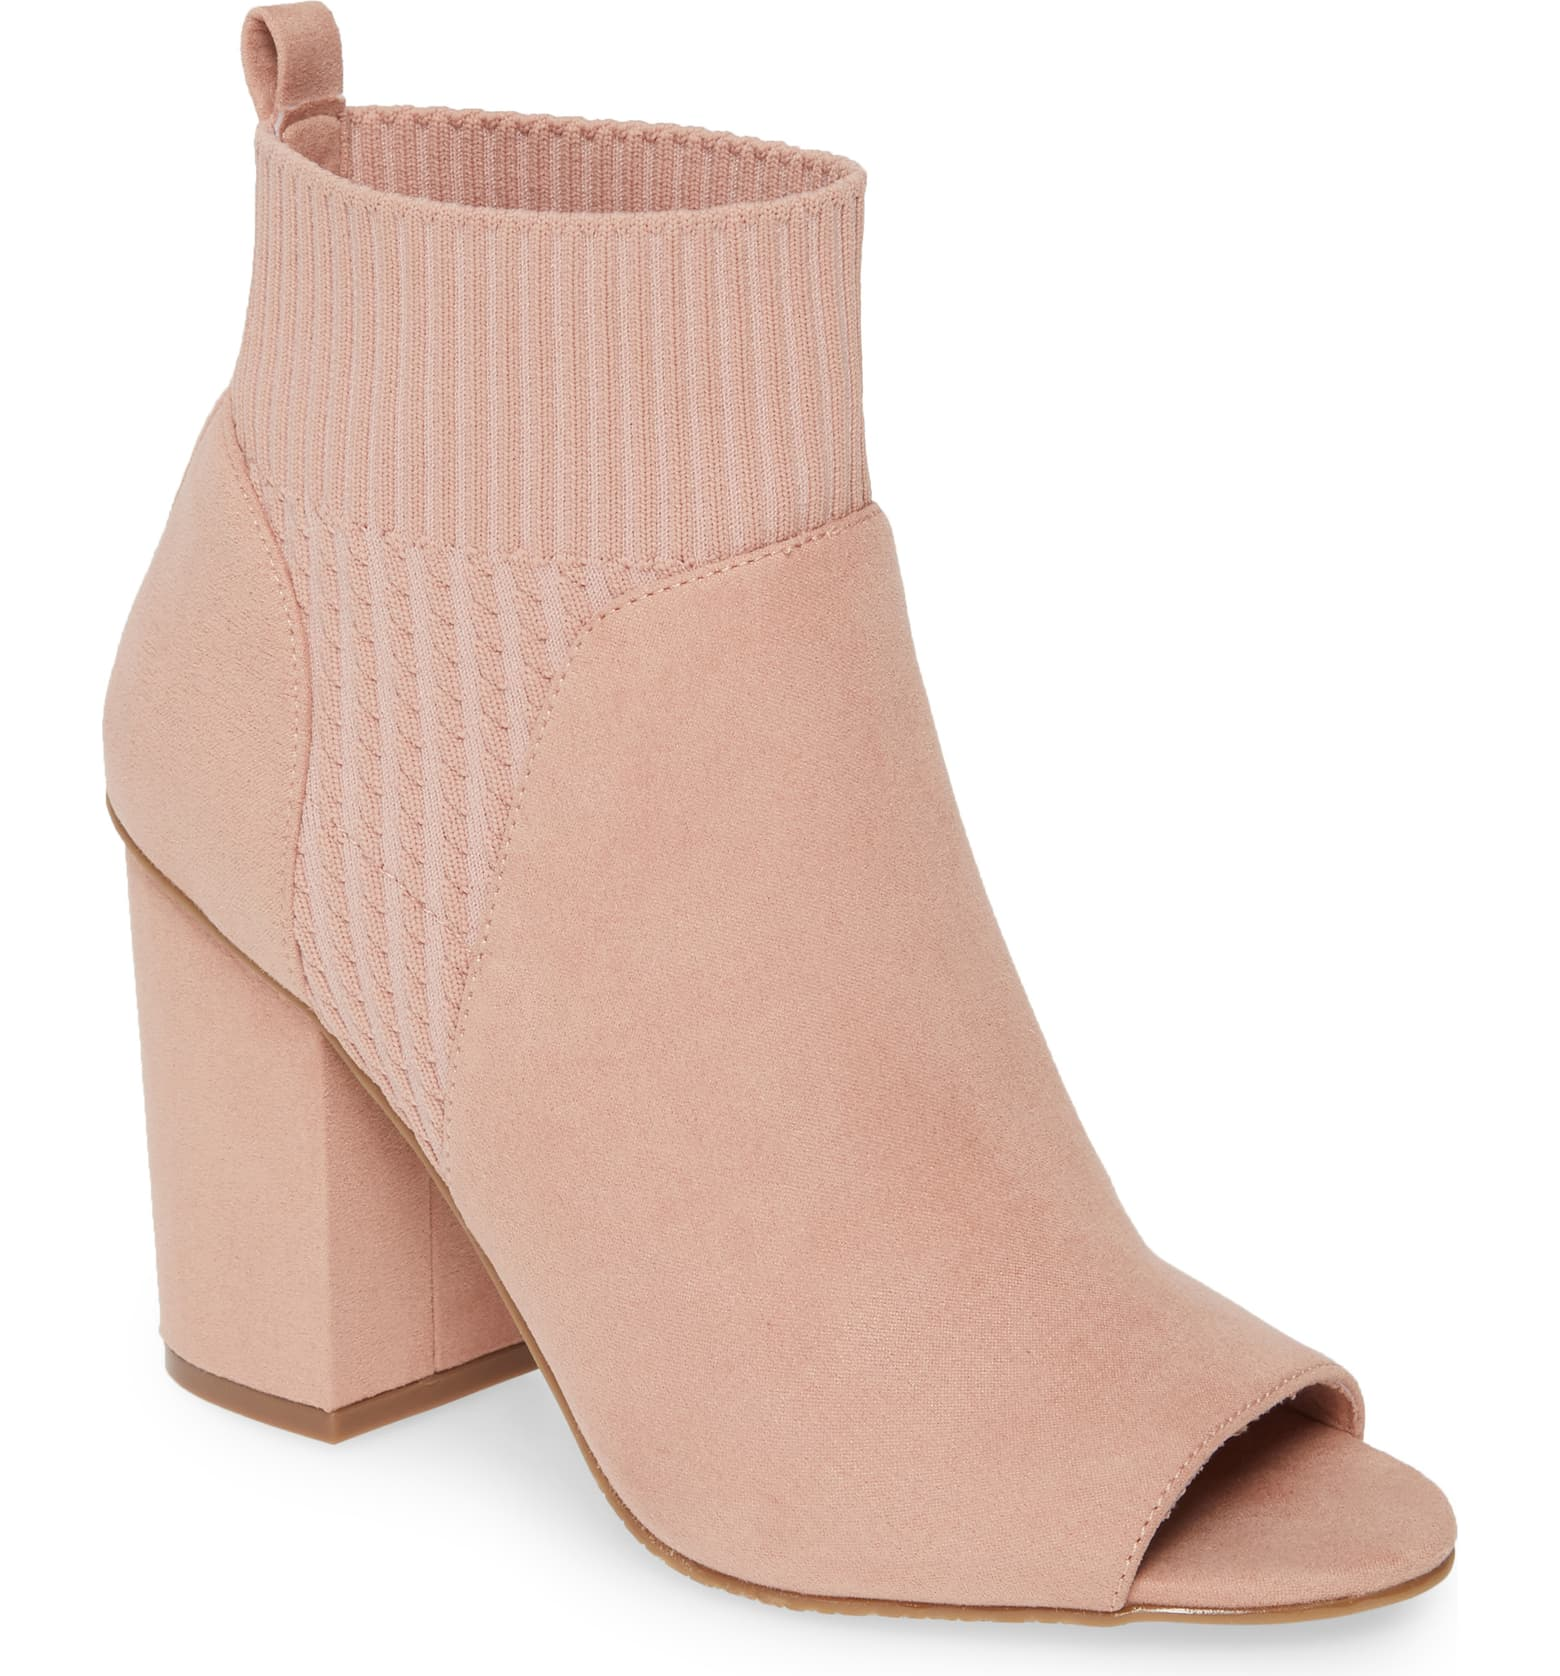 Nordstrom Anniversary Sale - #NSALE - Nordstrom Sale - Fall Fashion - Women's Fashion - Sabby Style-8